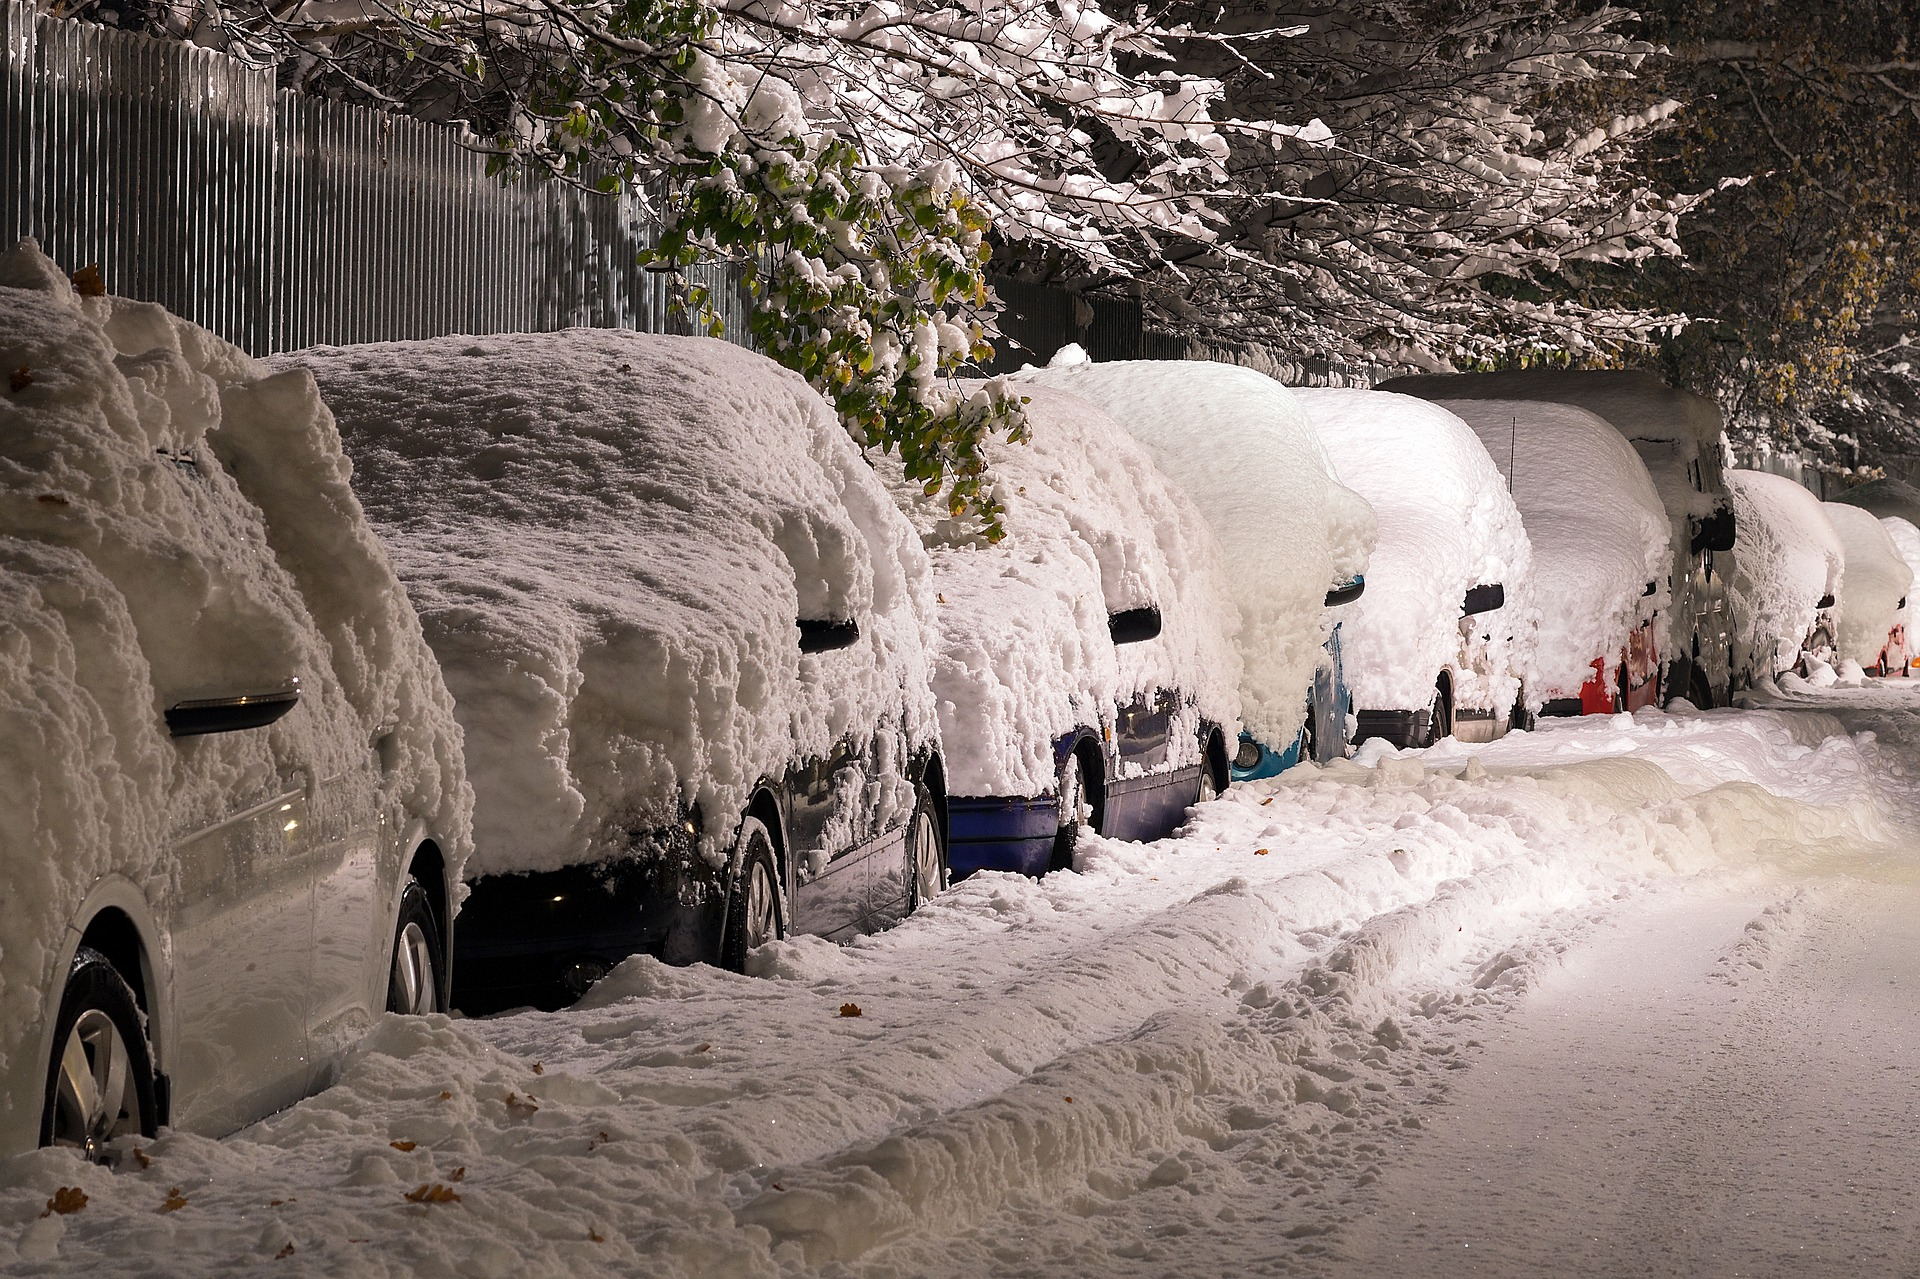 Cars in winter